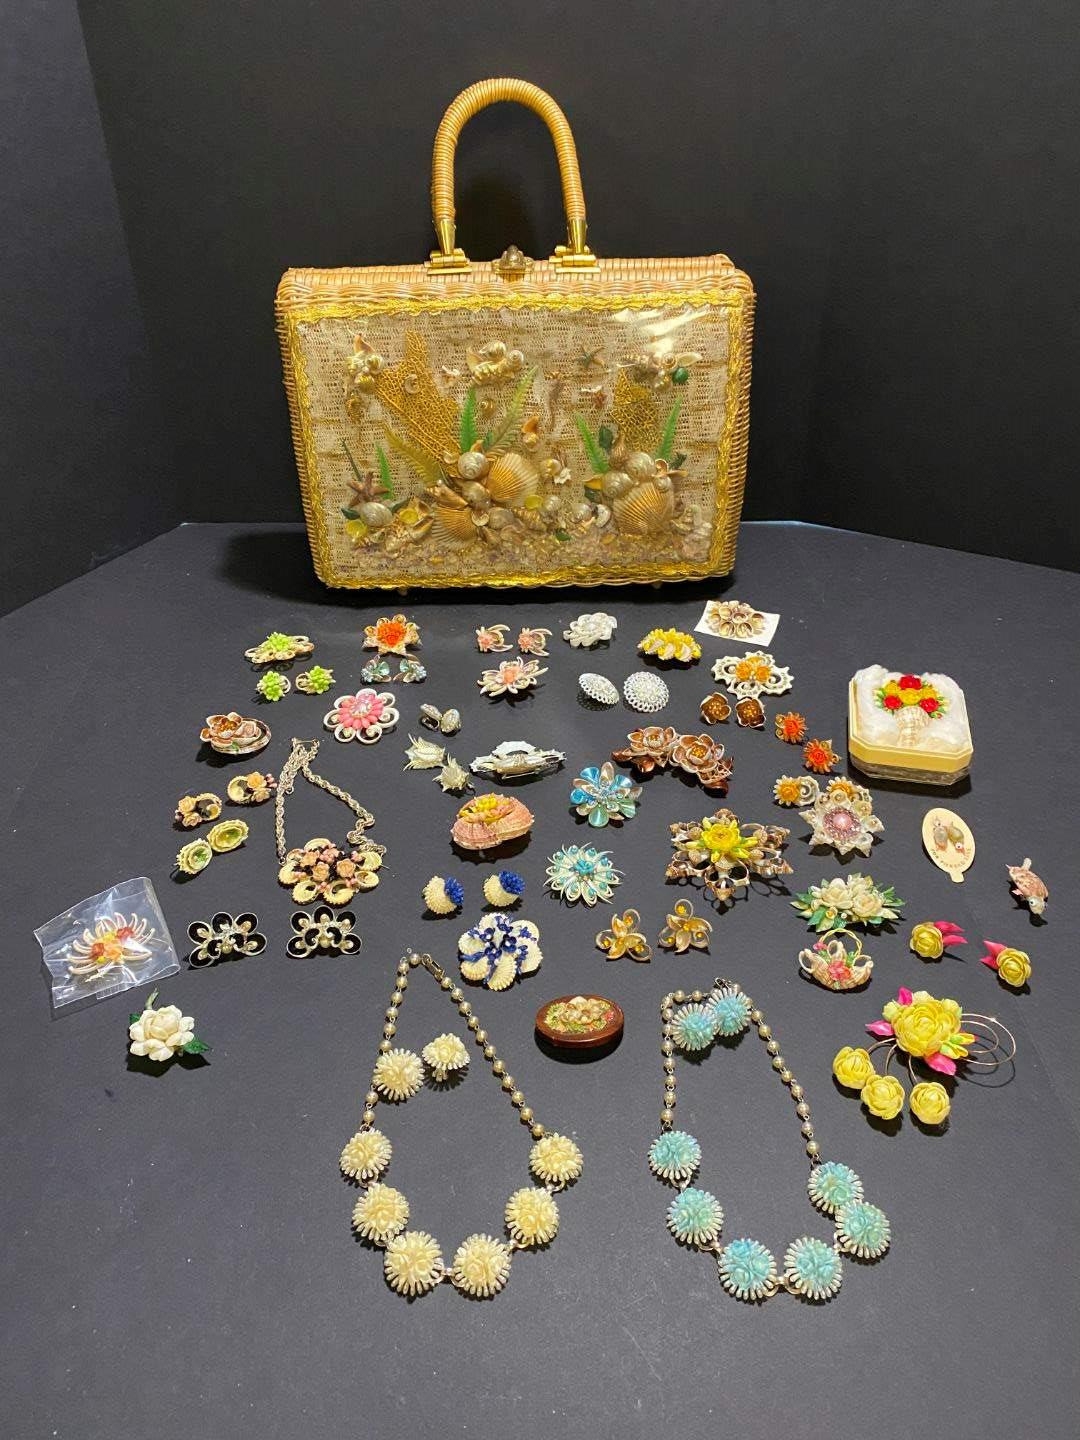 Lot # 379 - Very Cool Hand Designed Shell Art on Wicker Bag, Beautiful Handmade Shell Earrings & Necklaces (main image)